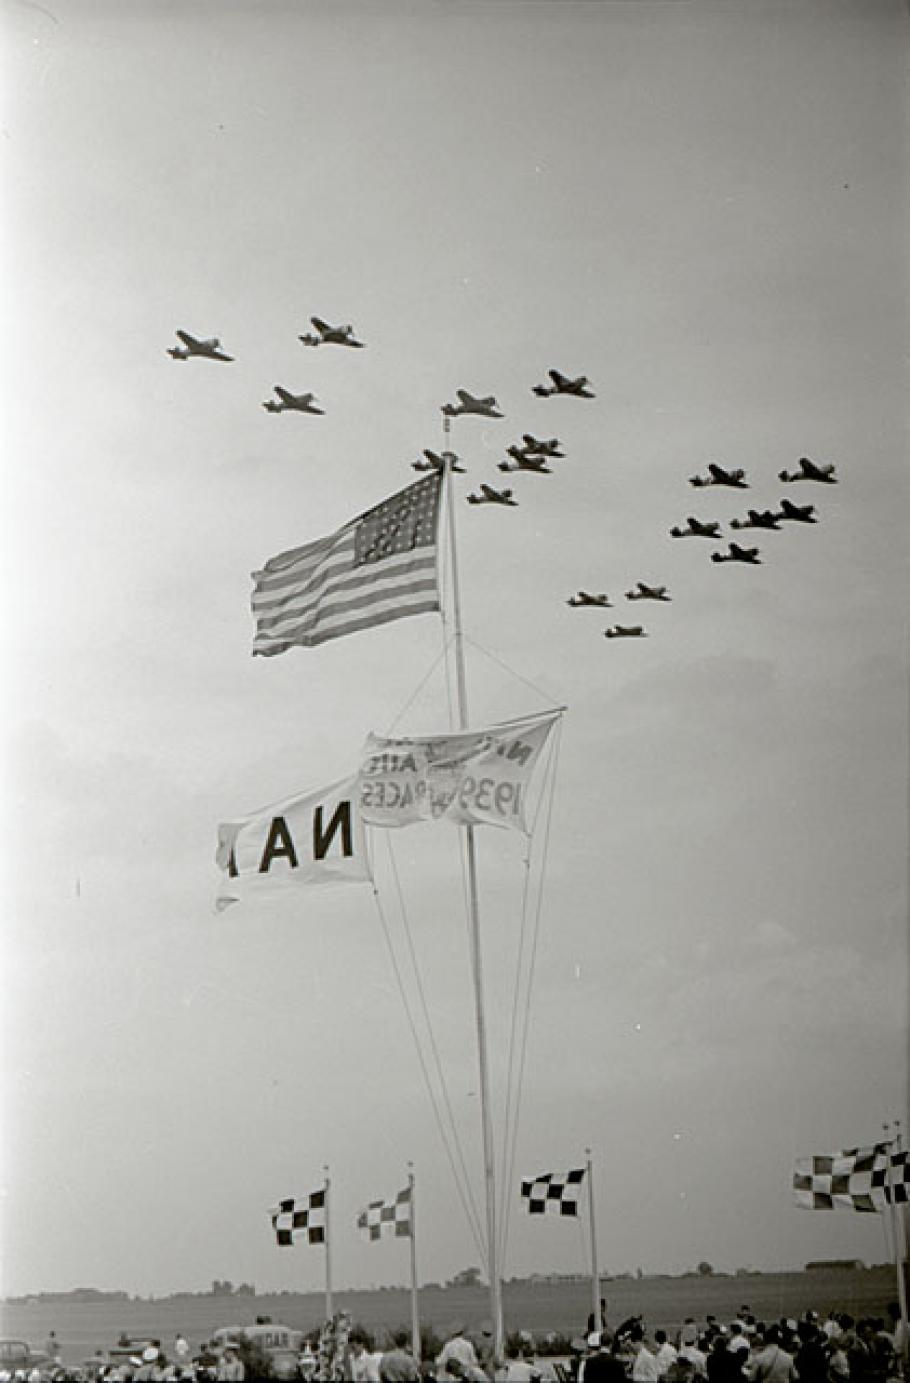 Formation of airplanes fly past American flag. Spectators can seen at bottom.